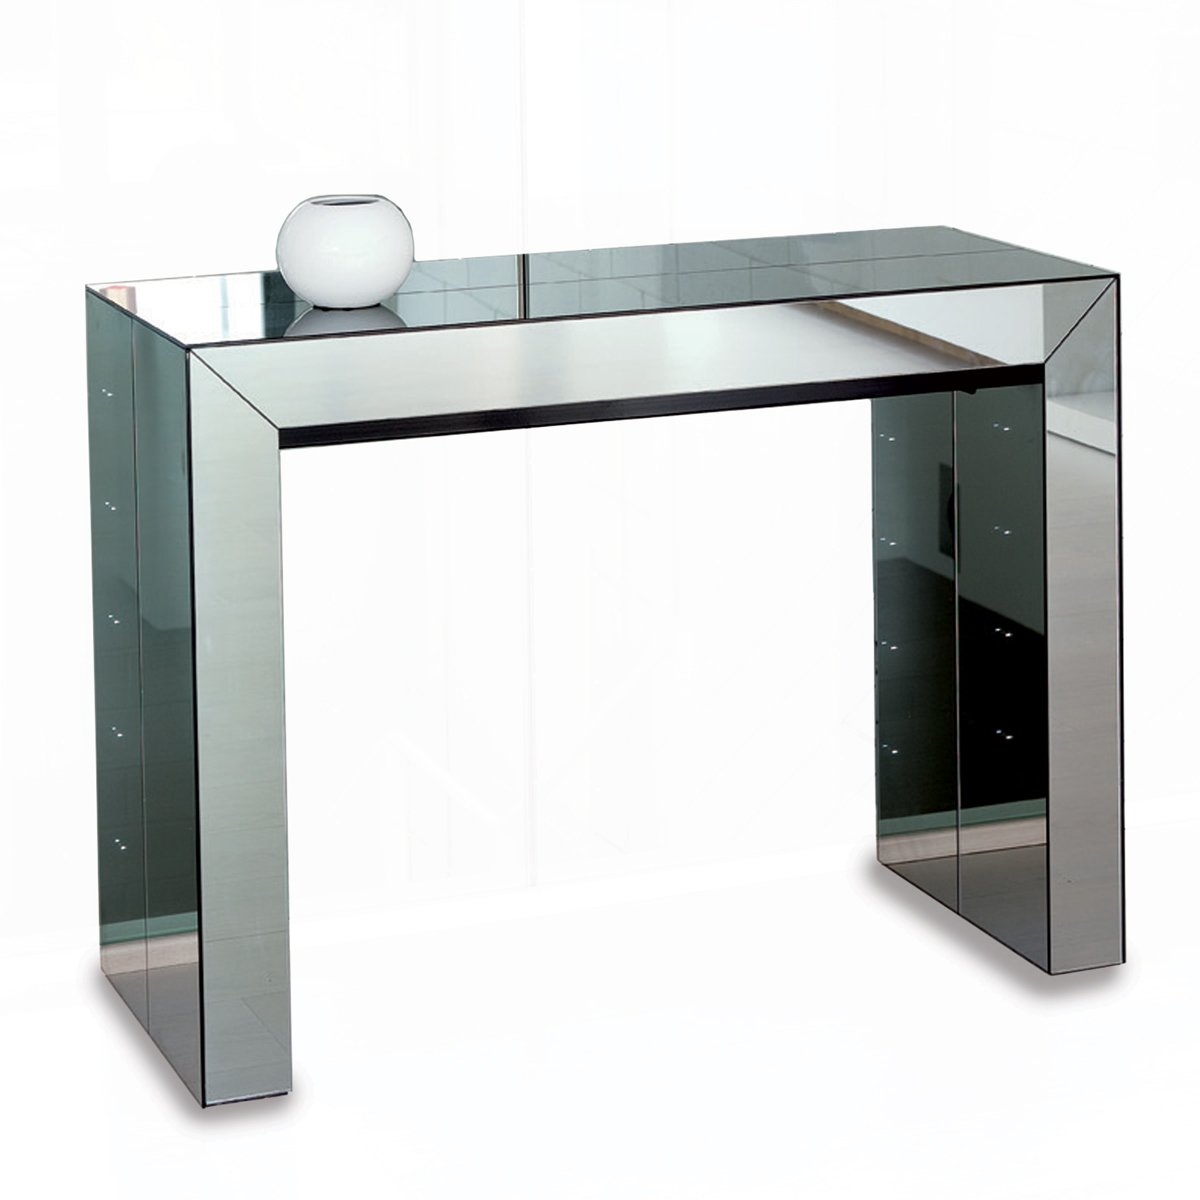 Table Console Miroir Meubles Et Atmosph Re